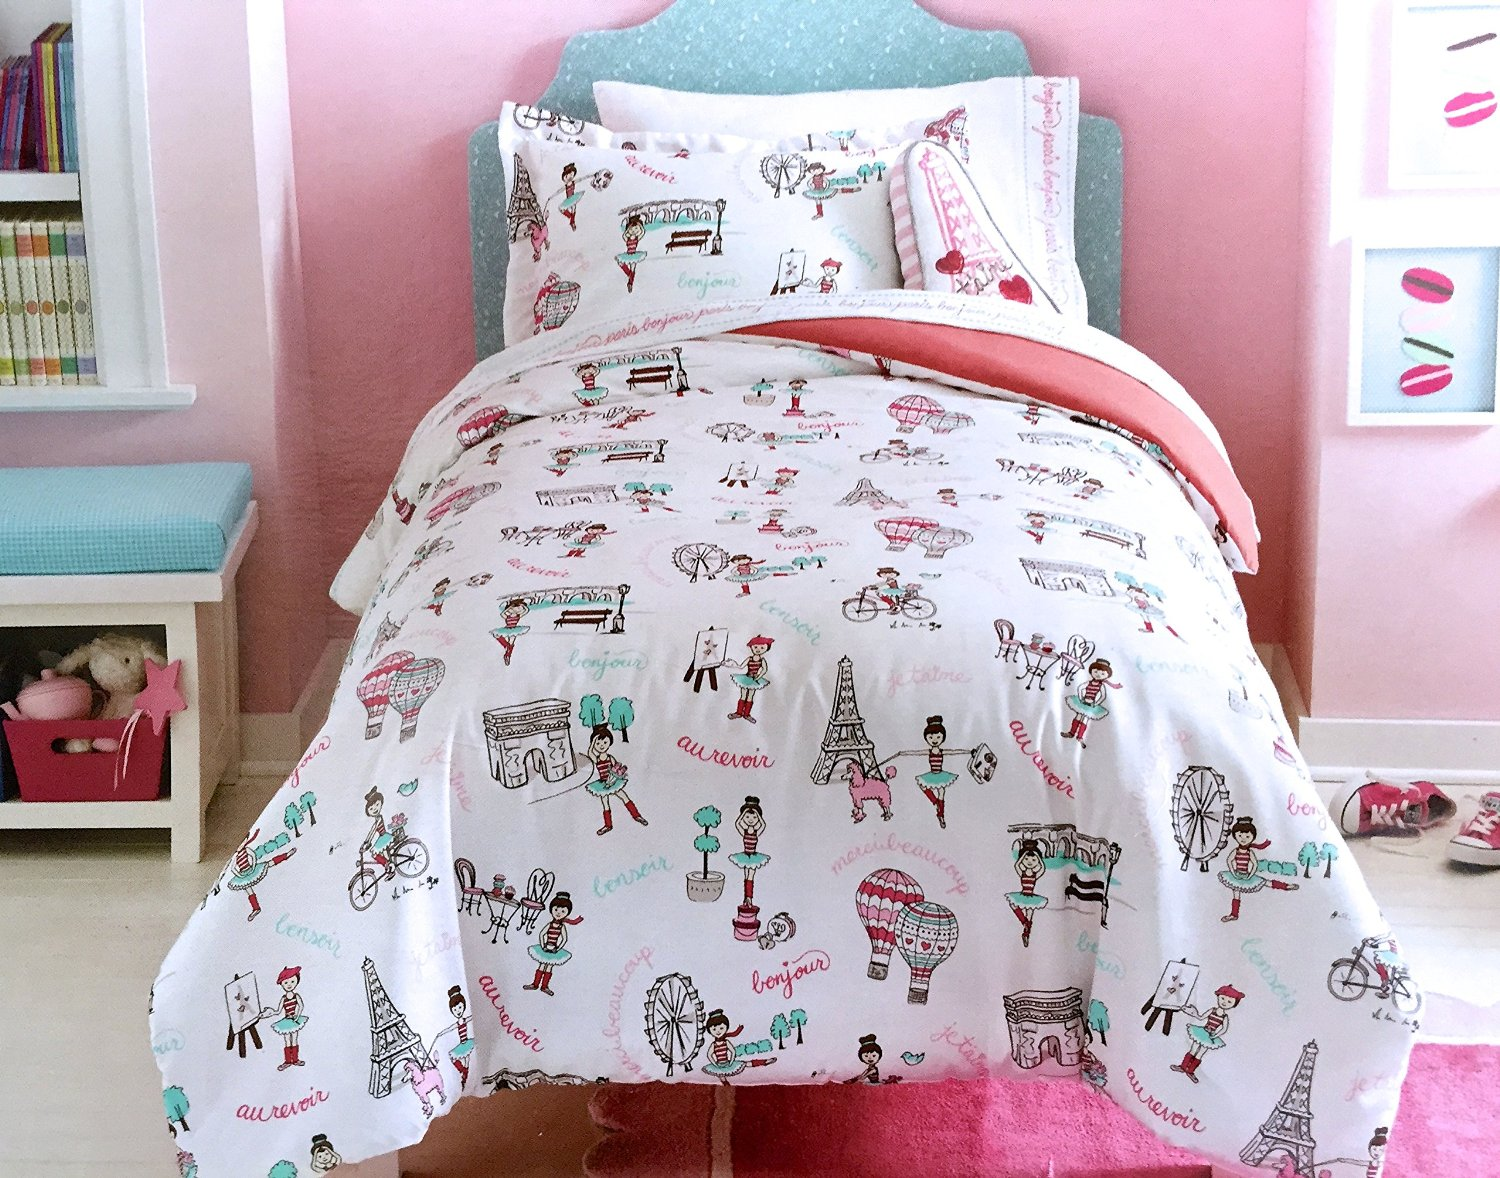 Perfect Paris & Eiffel Tower Themed Bedding for Less GT12